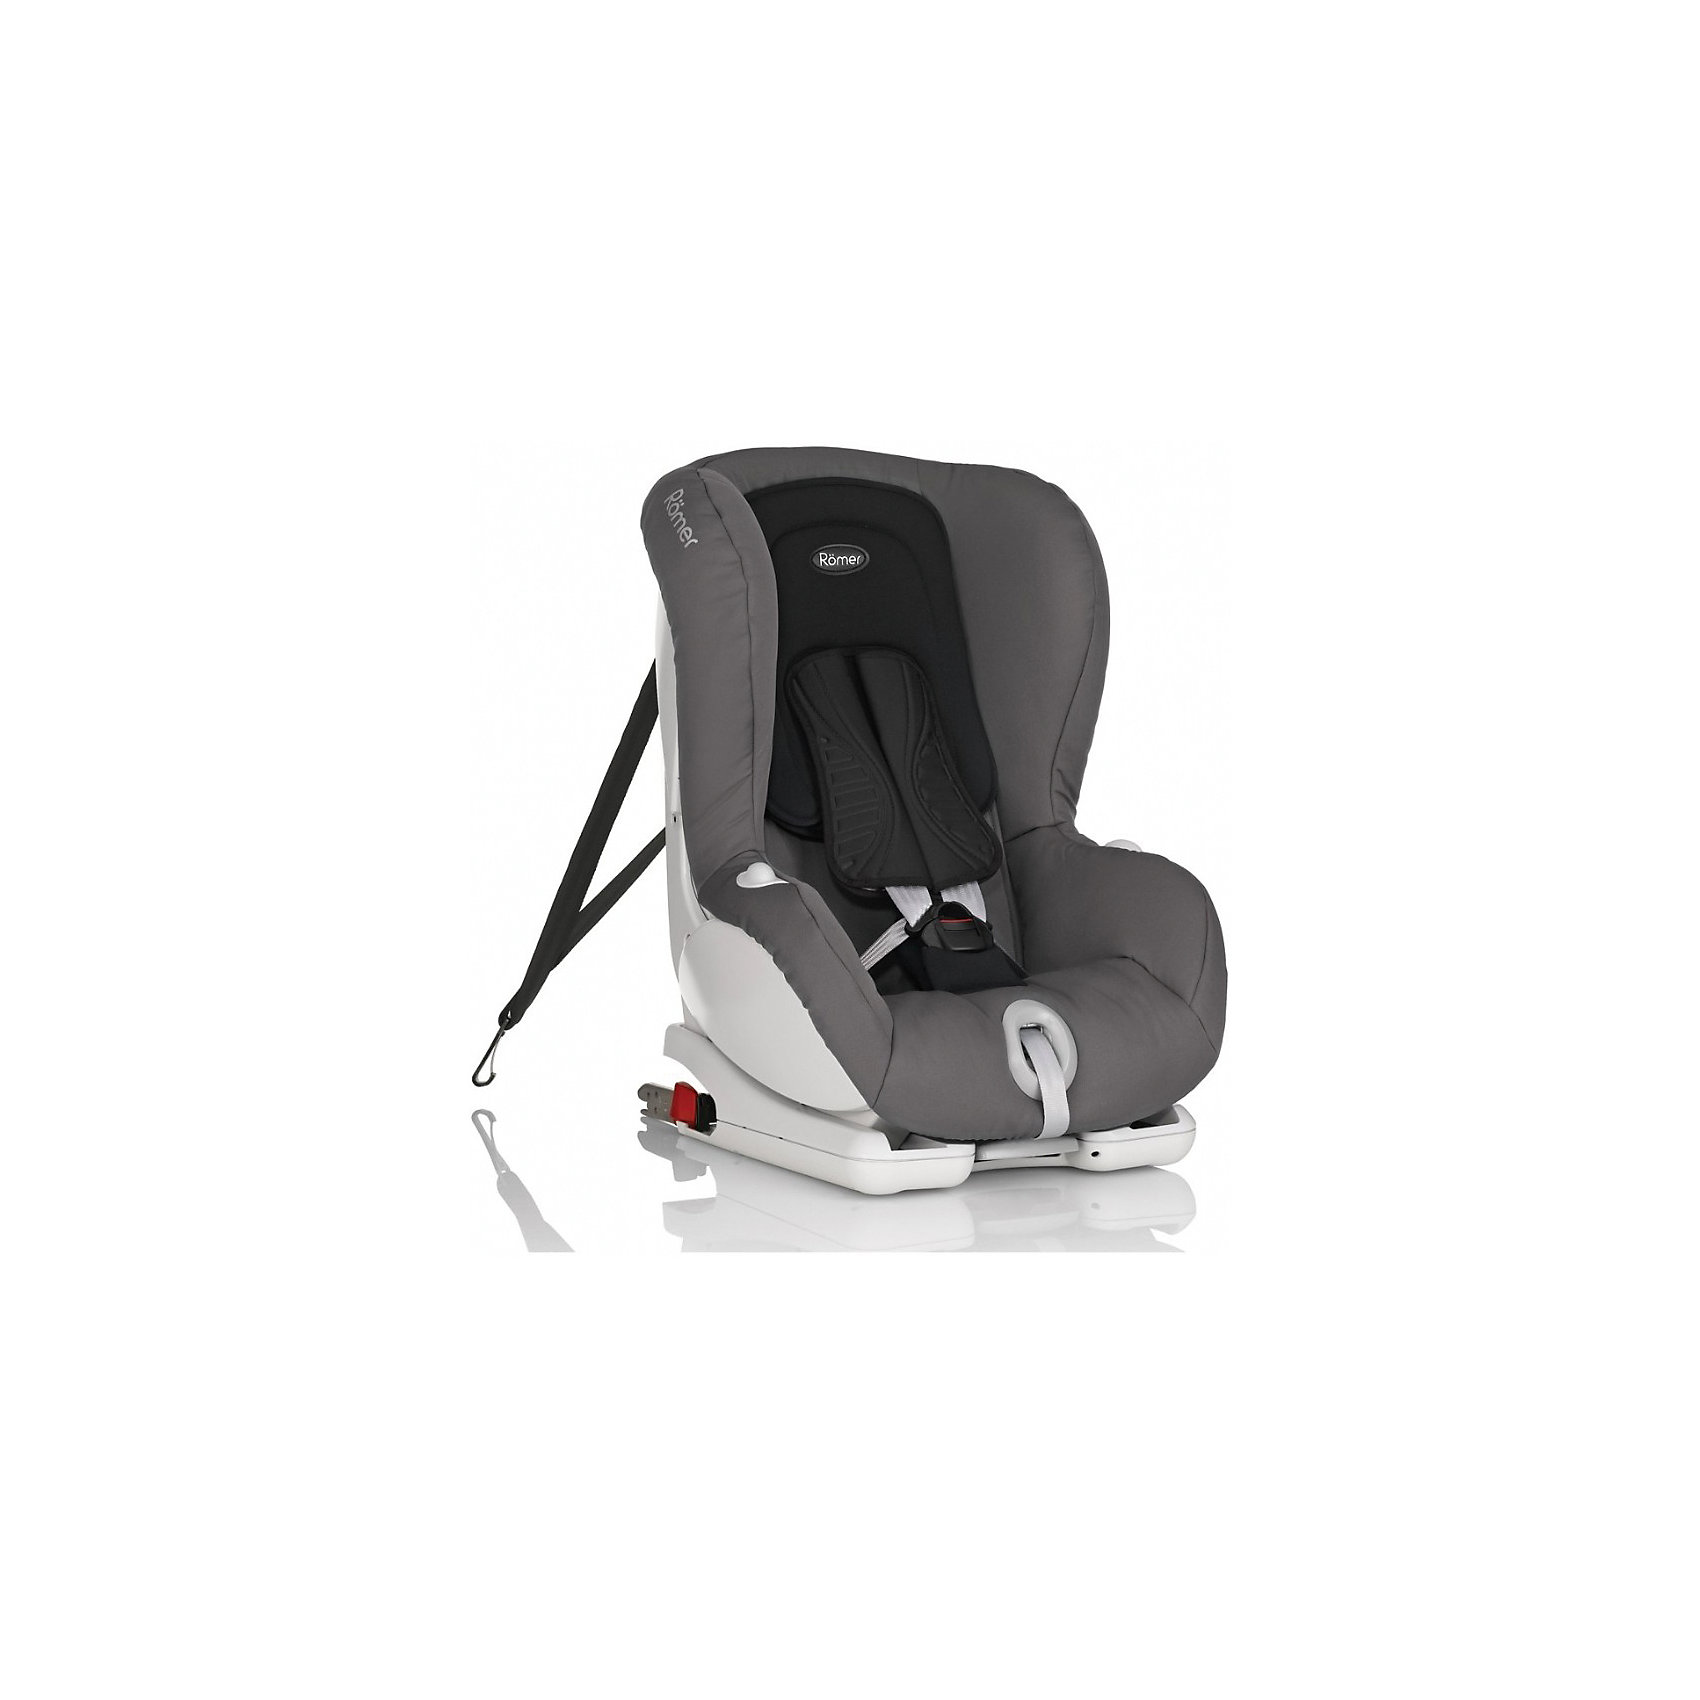 Автокресло VERSAFIX 9-18 кг., Britax Romer, Steel Grey